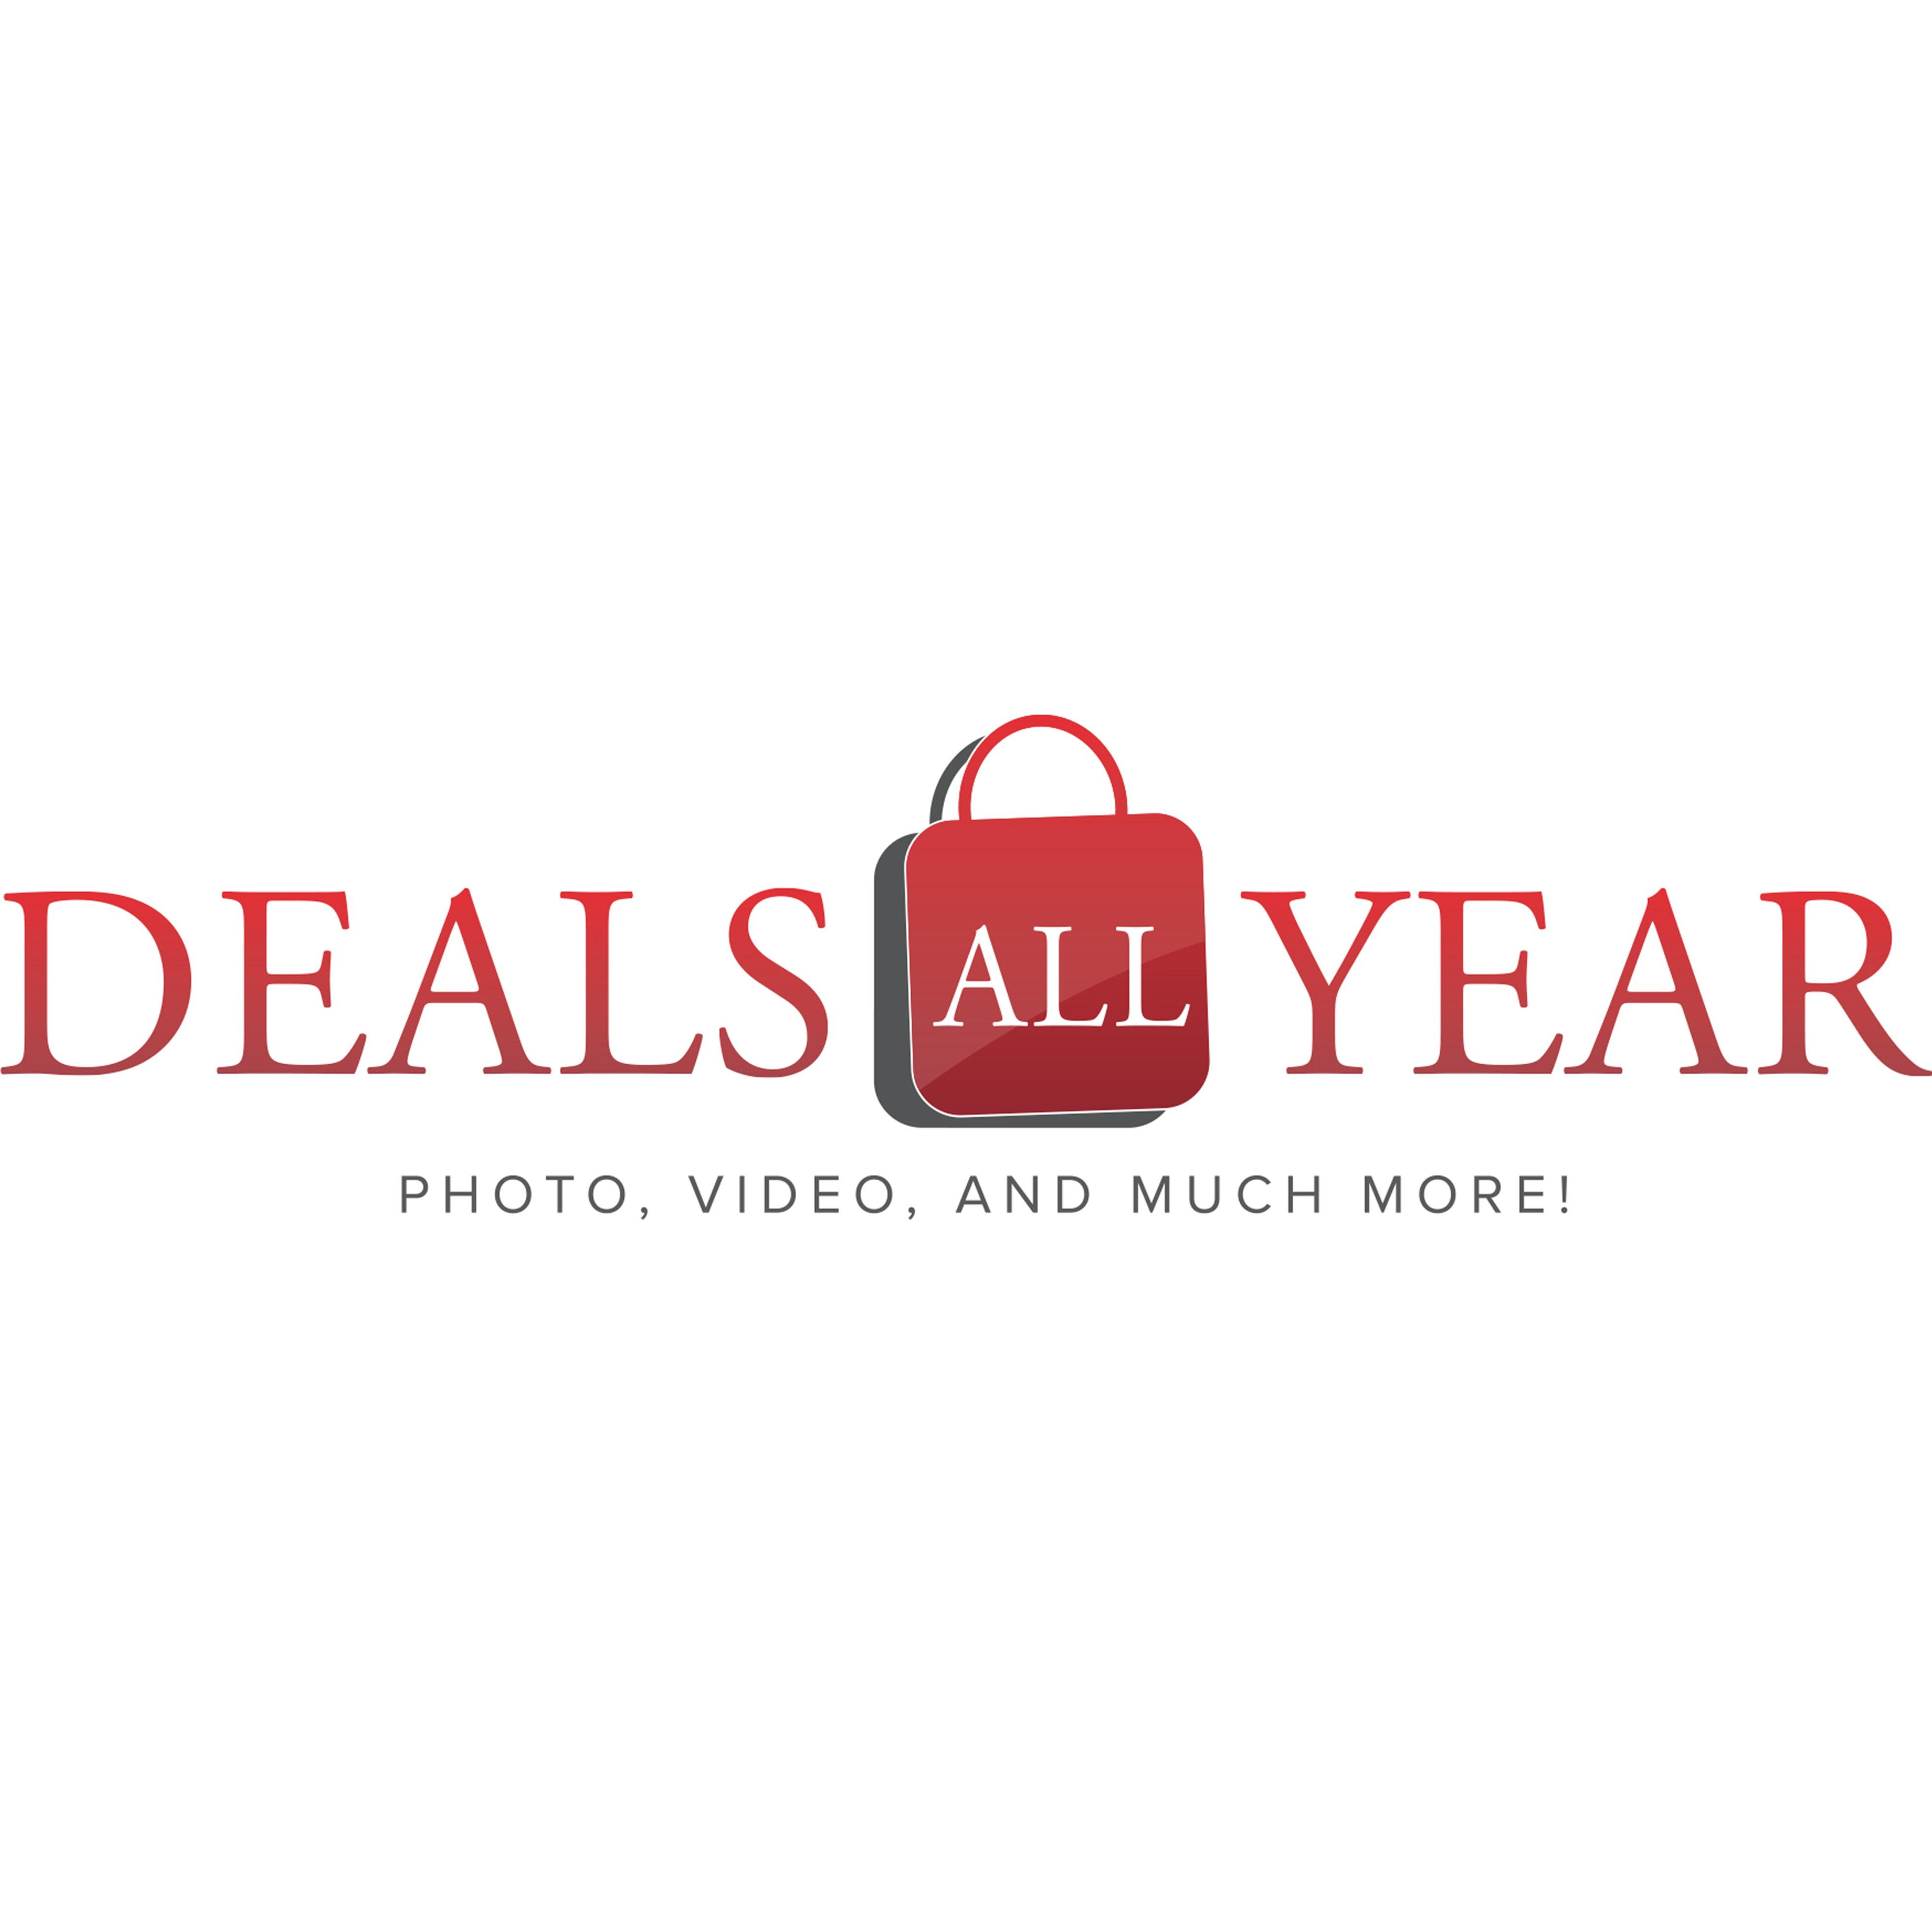 Deals All Year